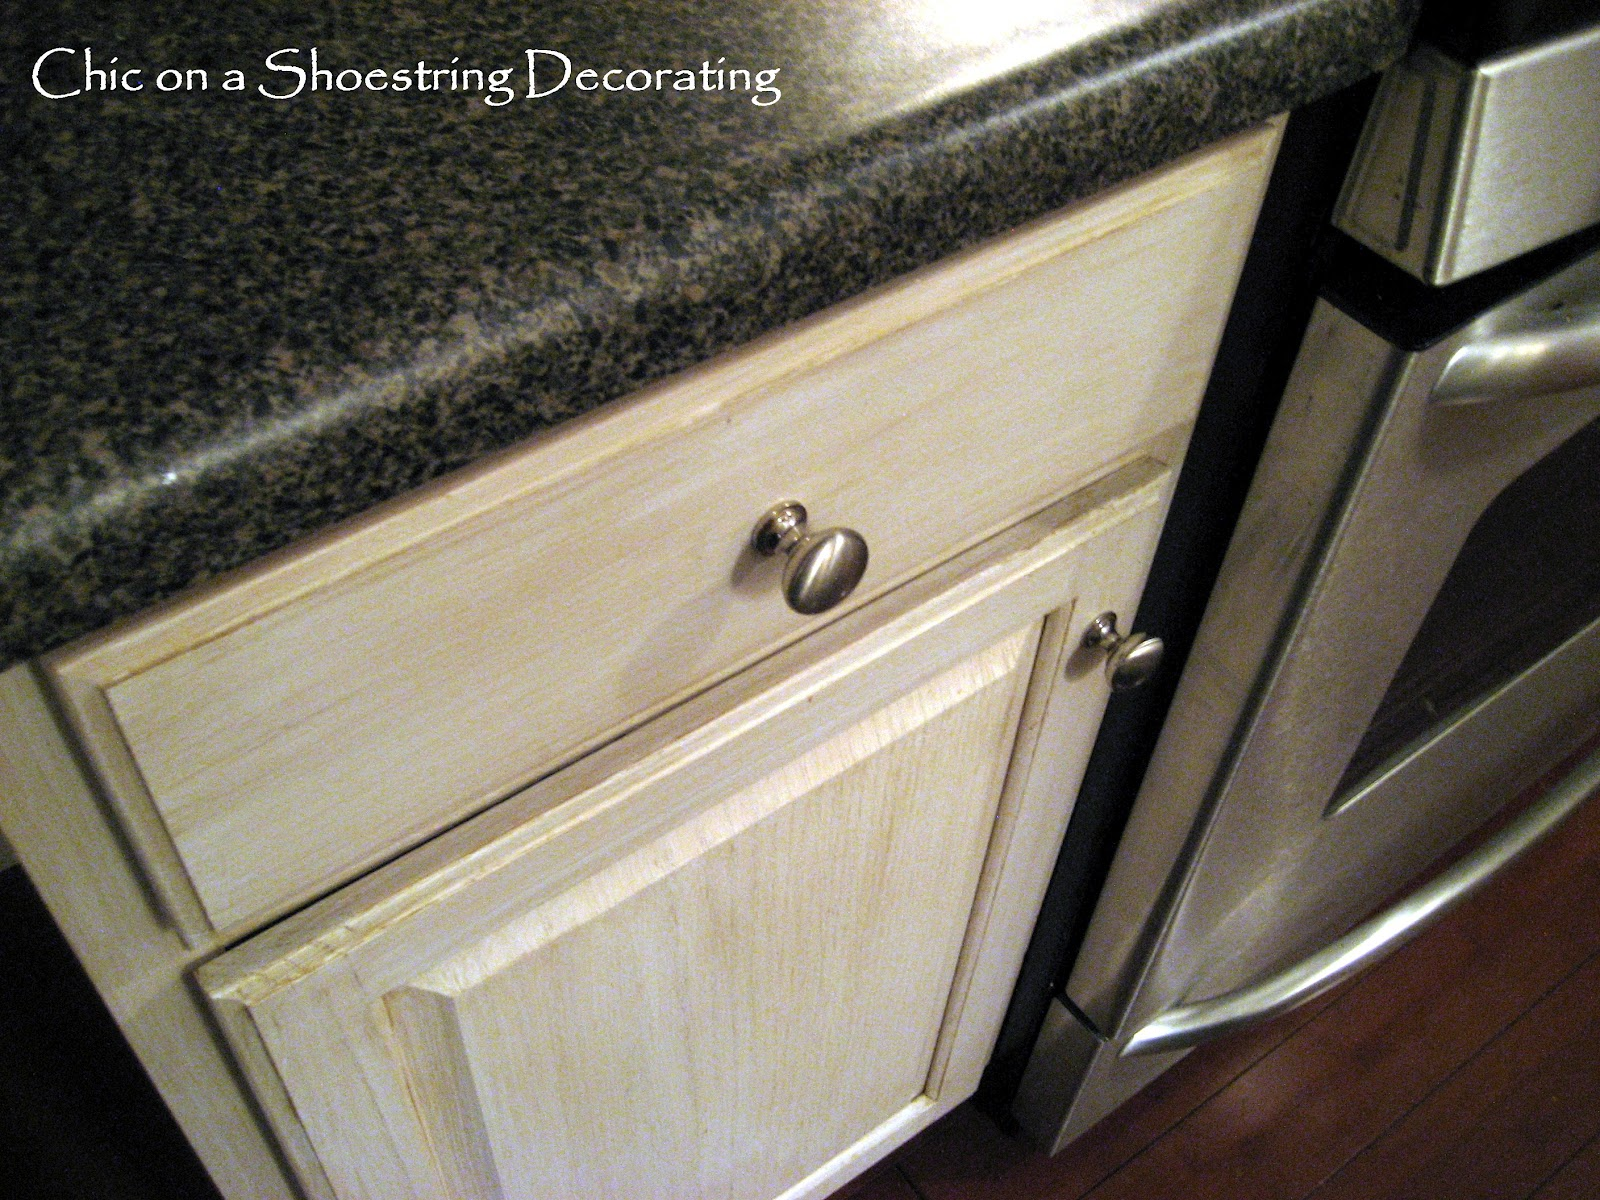 Kitchen Cabinets Knobs Chic On A Shoestring Decorating How To Change Your Kitchen